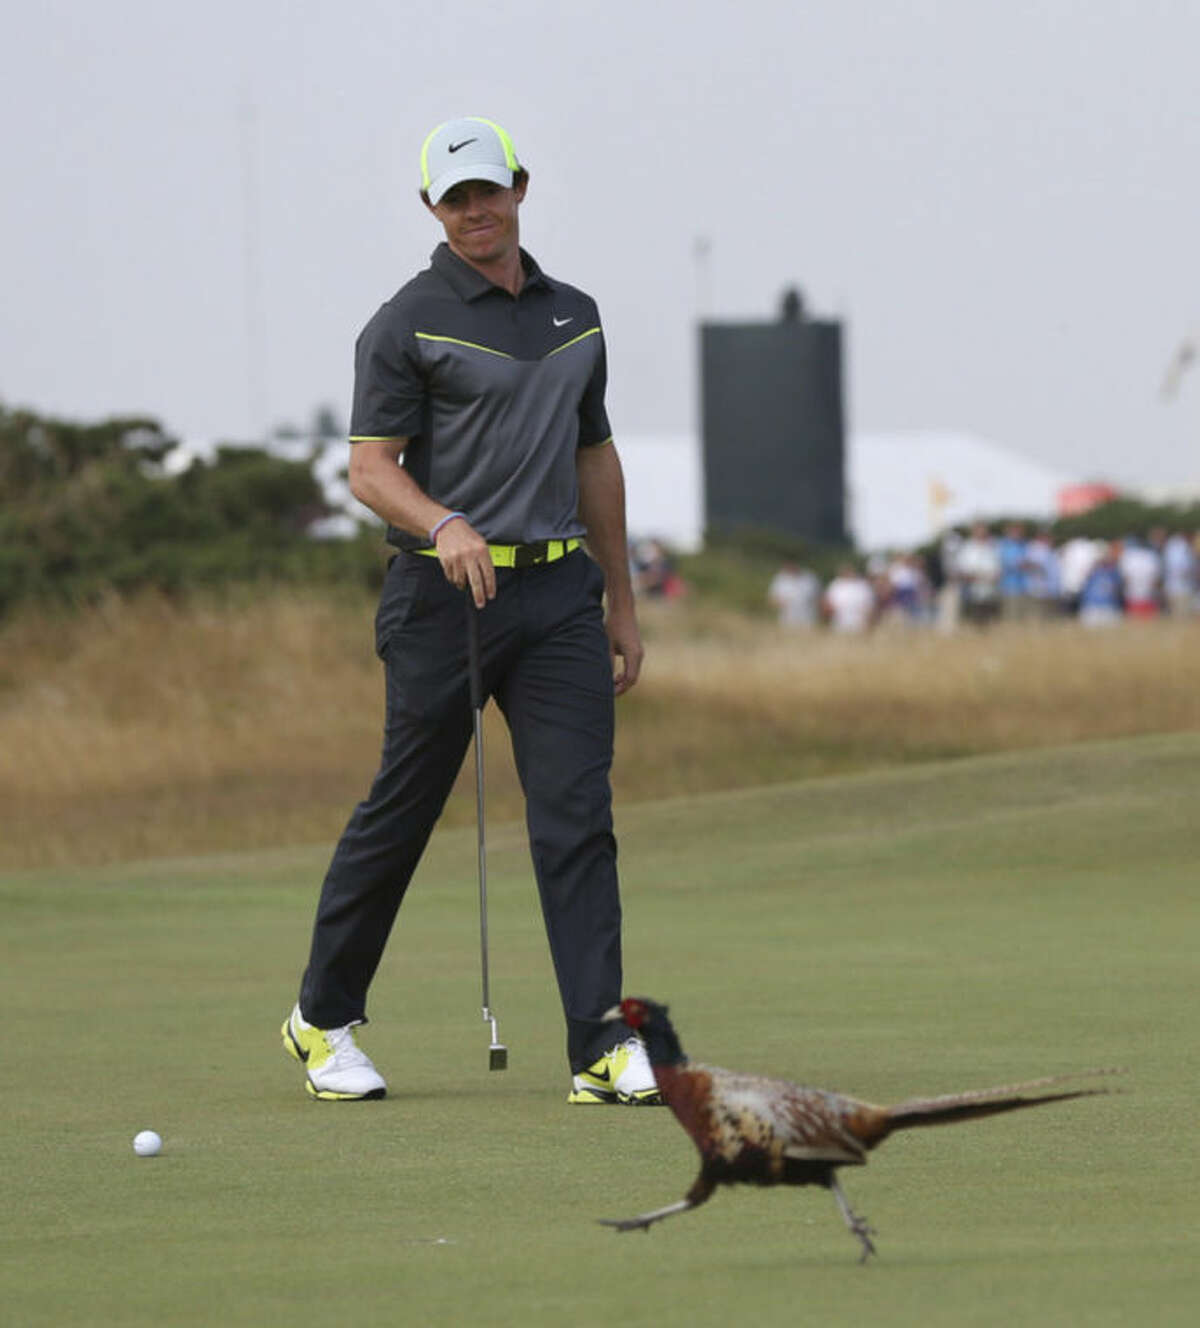 Rory McIlroy of Northern Ireland pauses play and watches a pheasant crossing the 8th green during the second day of the British Open Golf championship at the Royal Liverpool golf club, Hoylake, England, Friday July 18, 2014. (AP Photo/Scott Heppell)